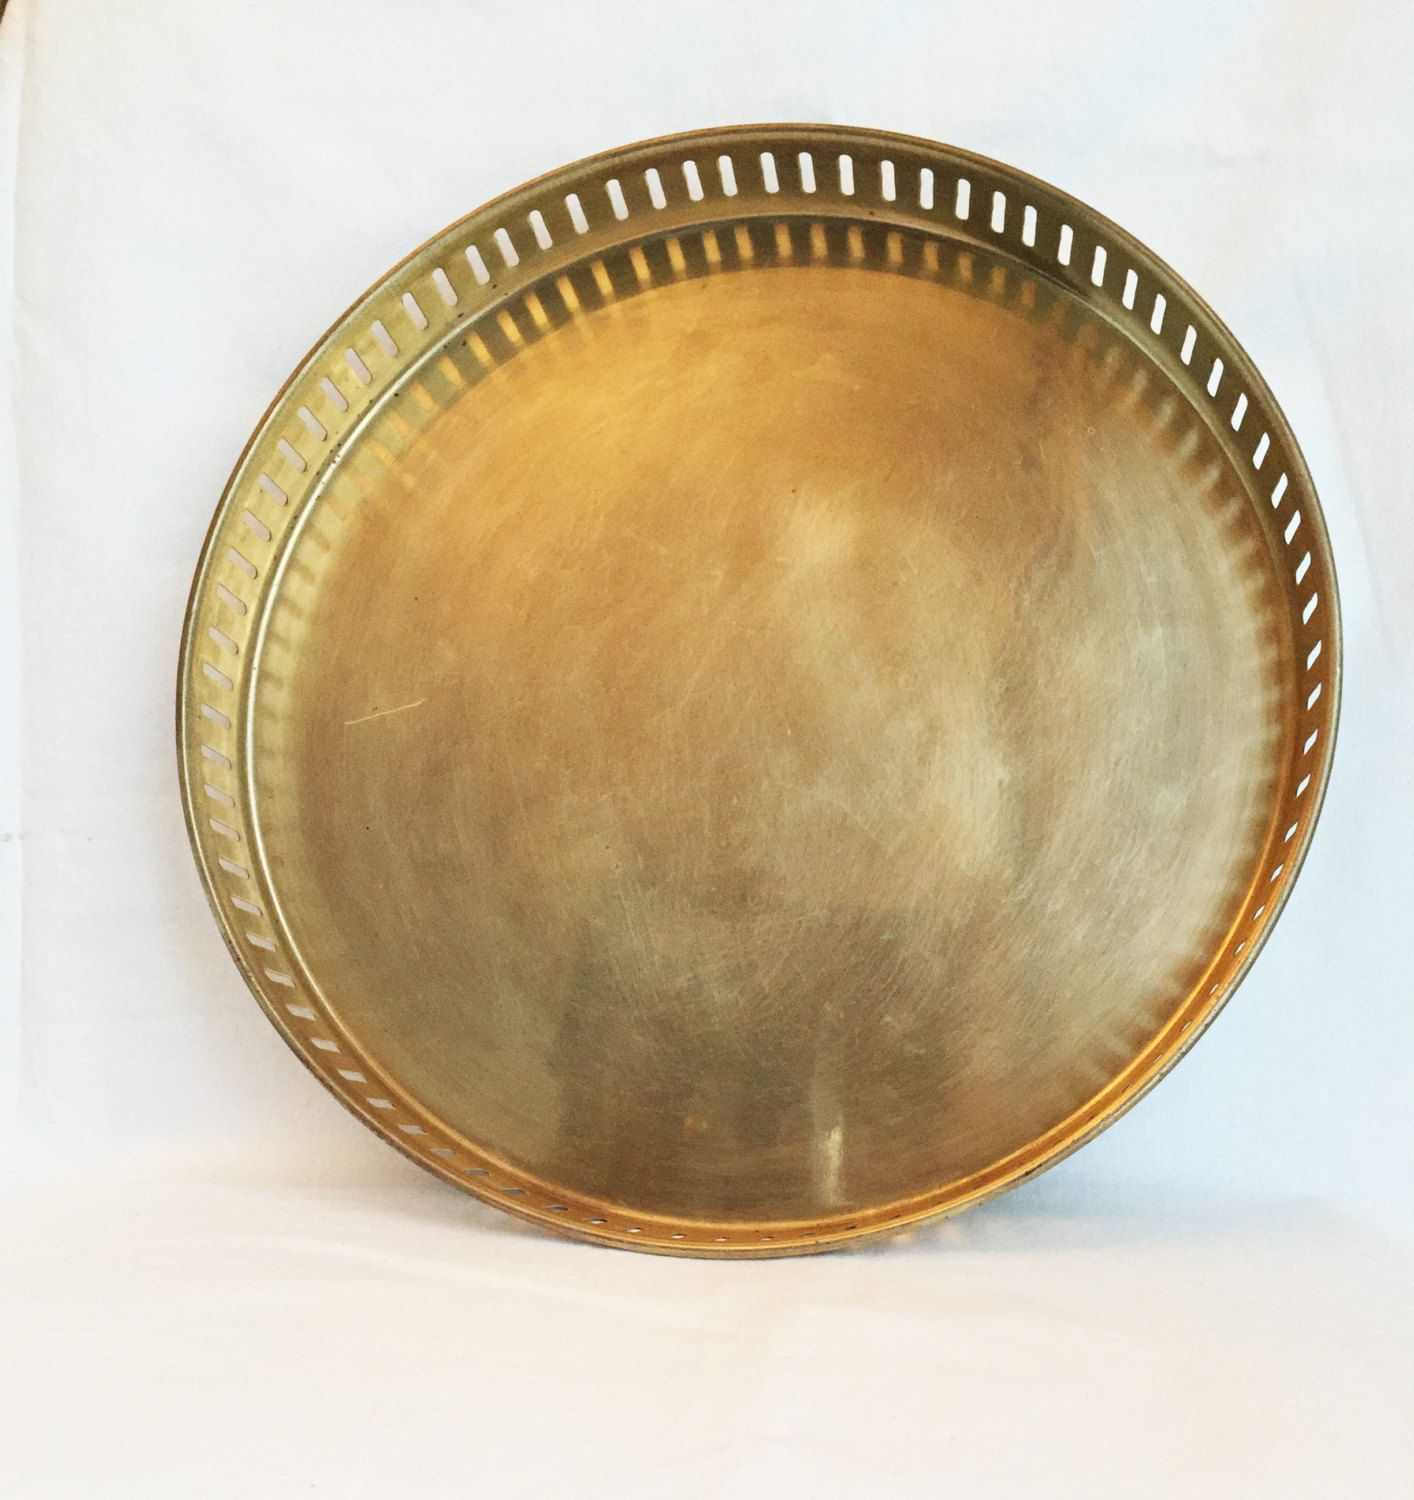 Vintage Br Tray Large Round Punched Edge